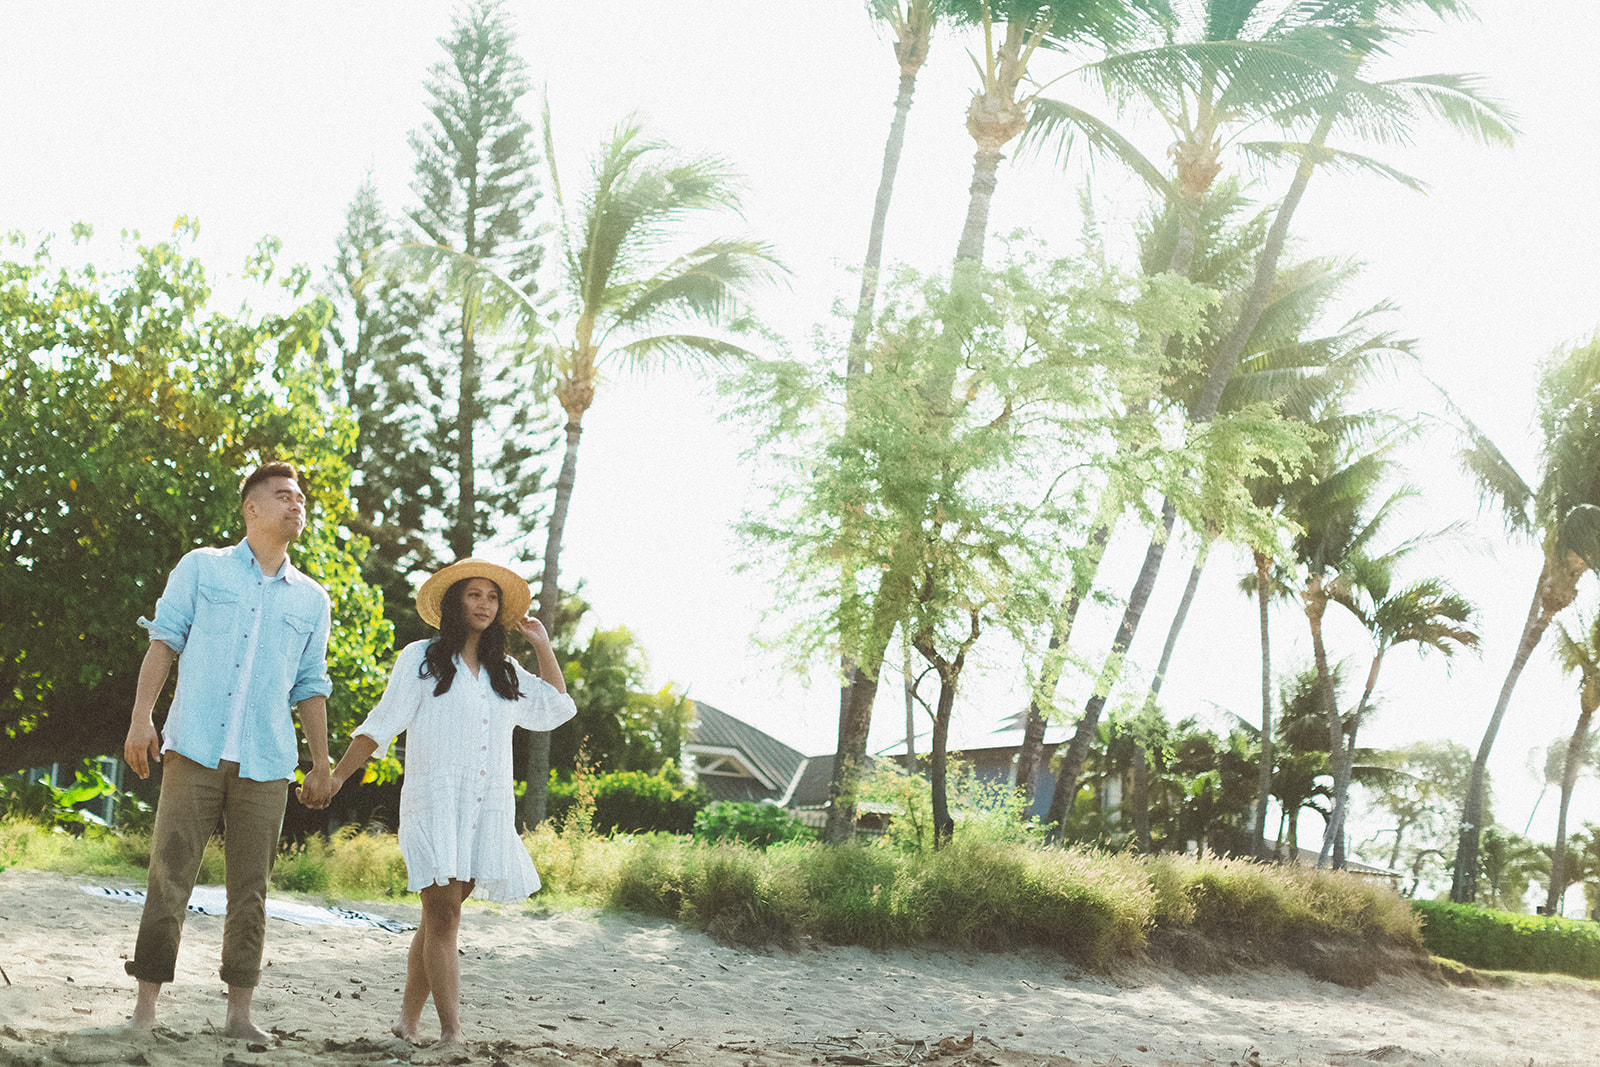 maui beach engagement session397.jpg